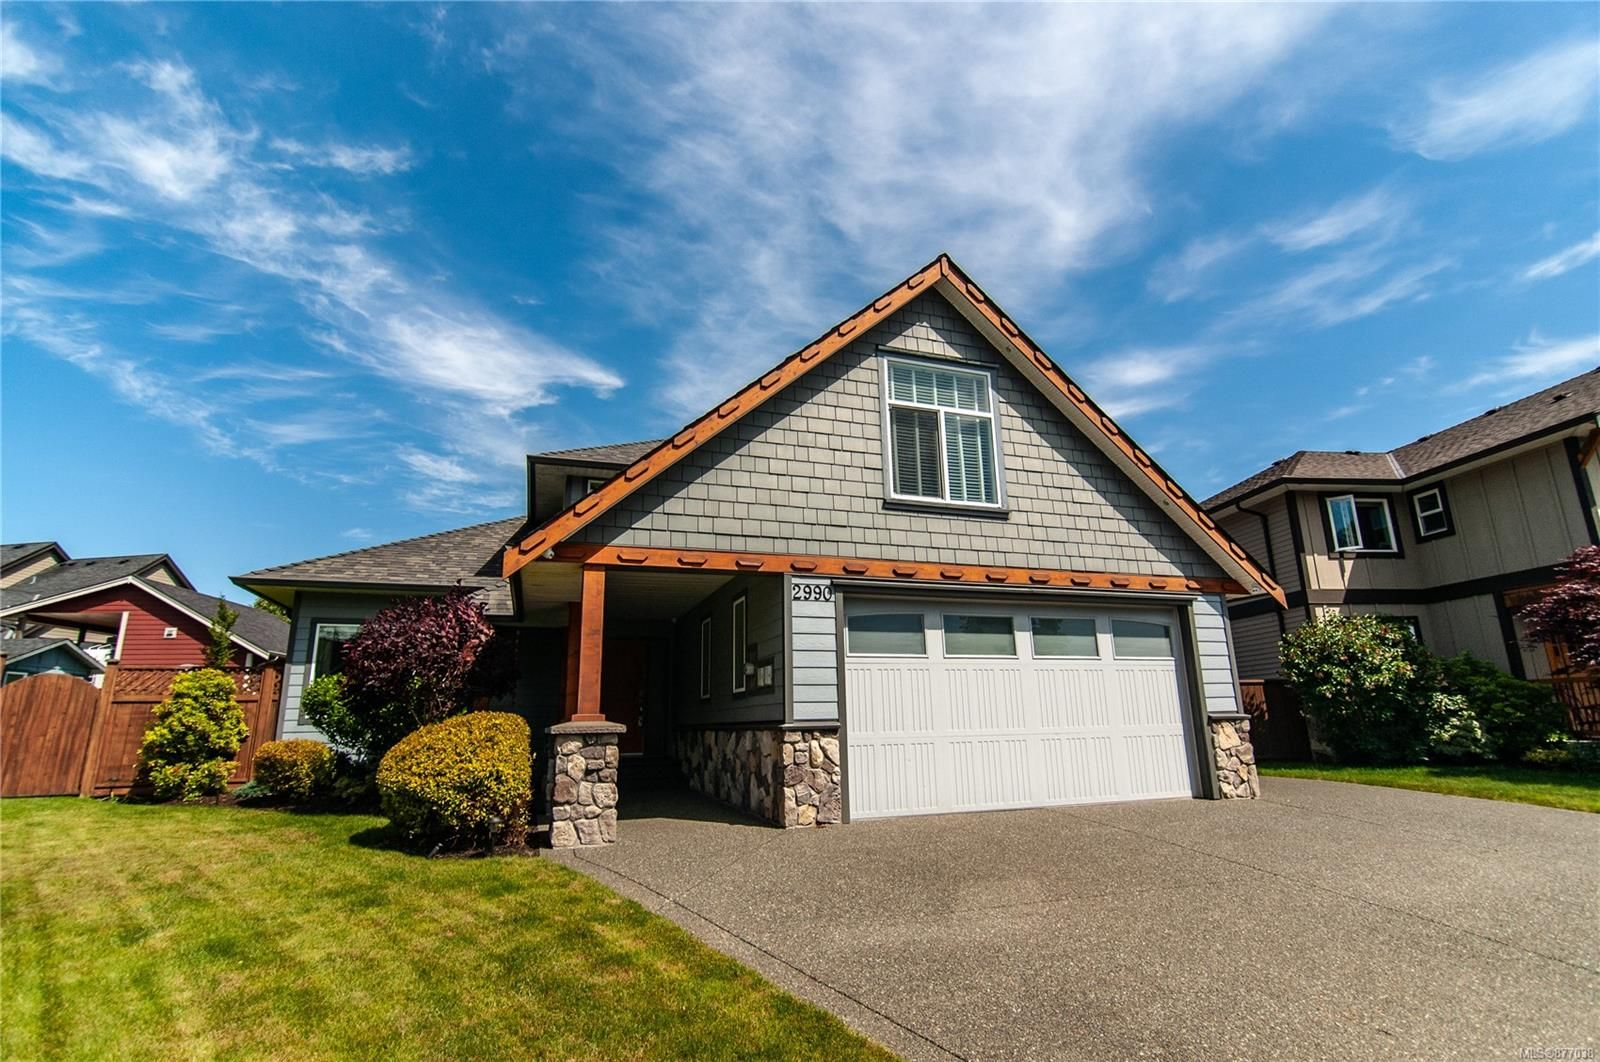 Main Photo: 2990 Hemming Pl in : CR Willow Point House for sale (Campbell River)  : MLS®# 877038